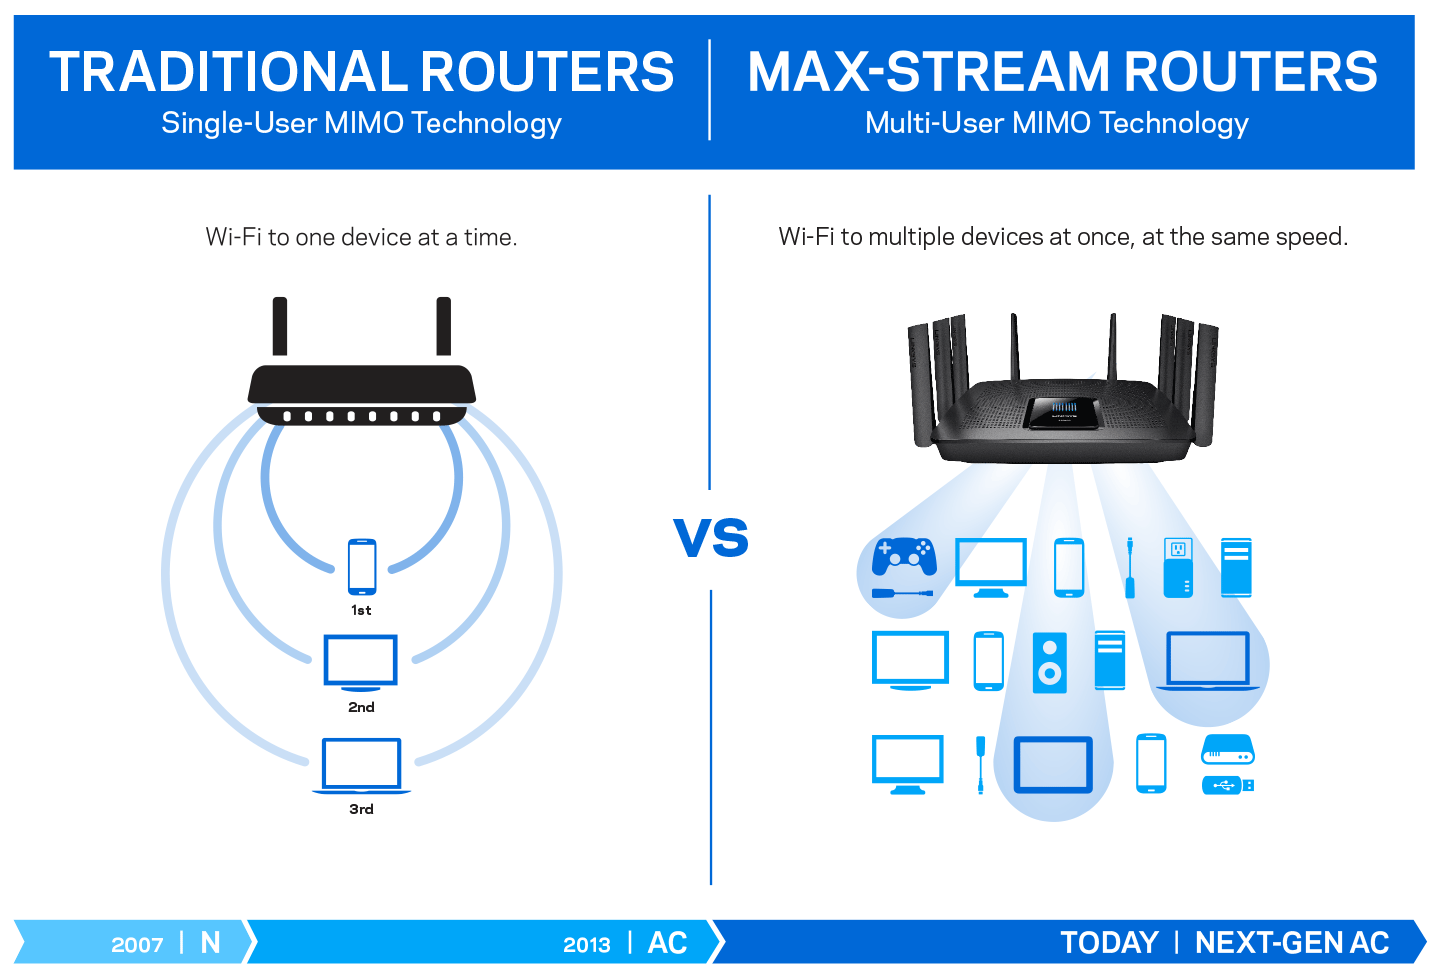 What Is A Wifi Router Above Typical Home Network Diagram There Ethernet Wireless Comparing Max Stream Mu Mimo And Tradtional Routers